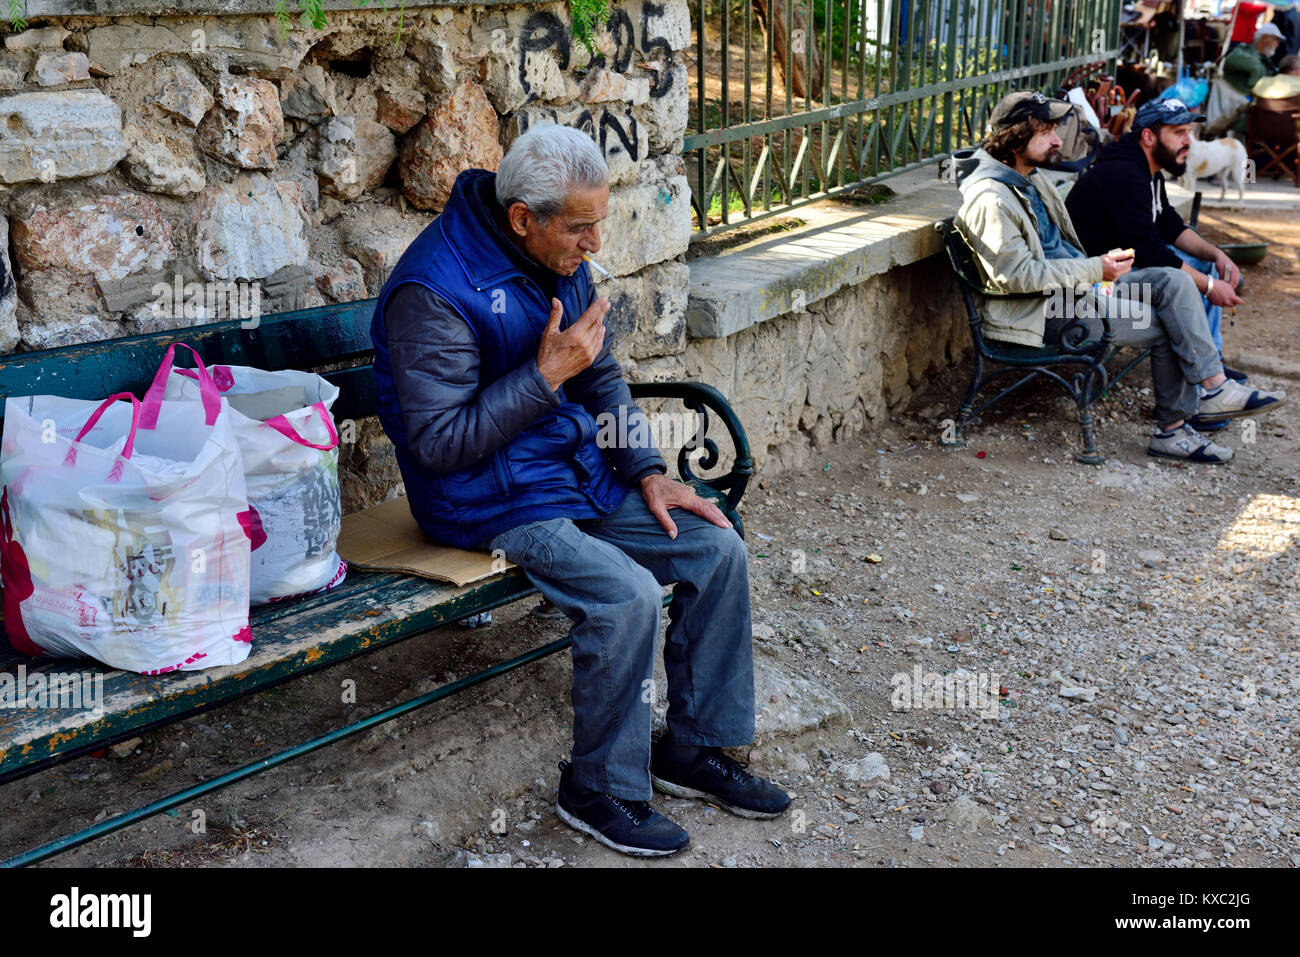 Older Greek man relaxing, sitting outside on bench with shopping bags, Athens, Greece Stock Photo